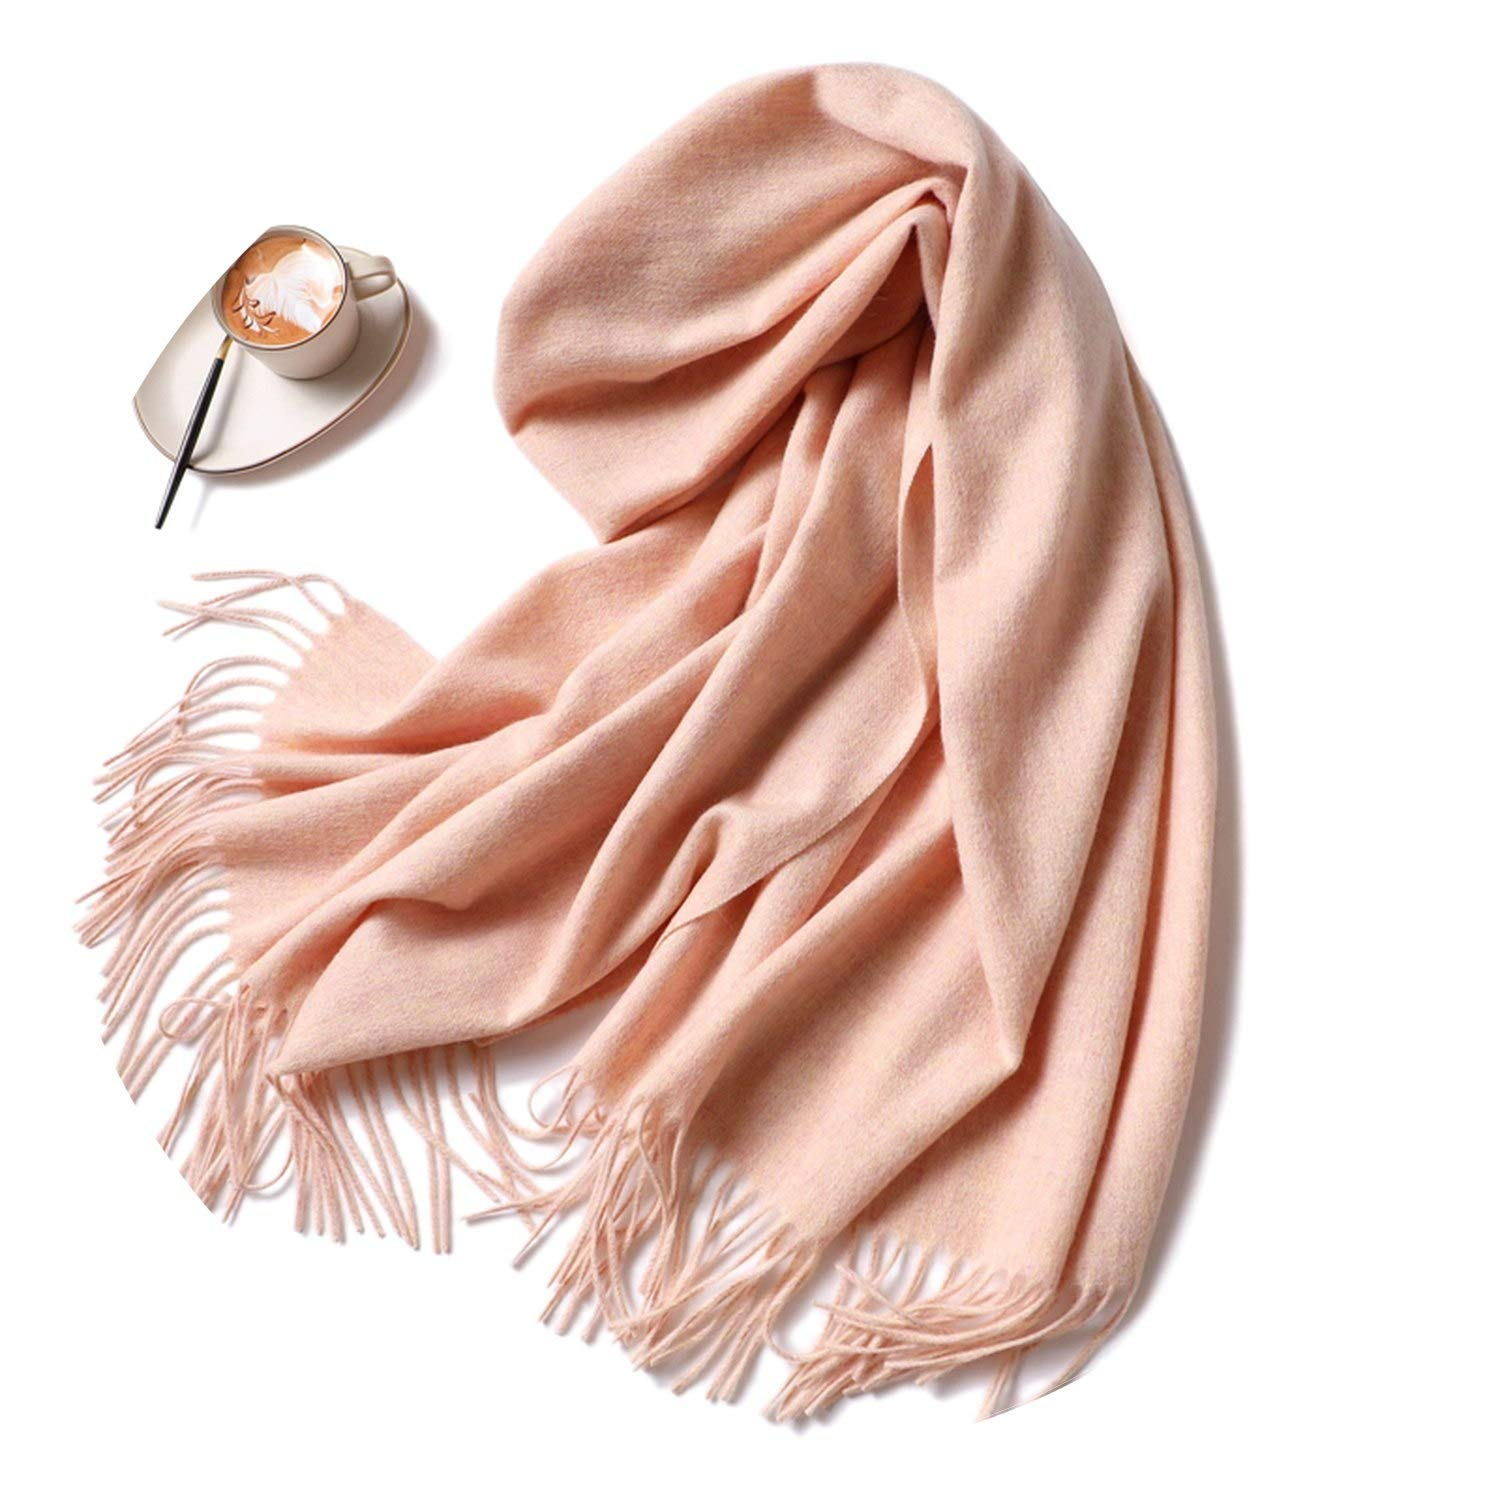 C5 winter women scarf lady shawls and wraps high thick warm neck head pashmina blanket,c6